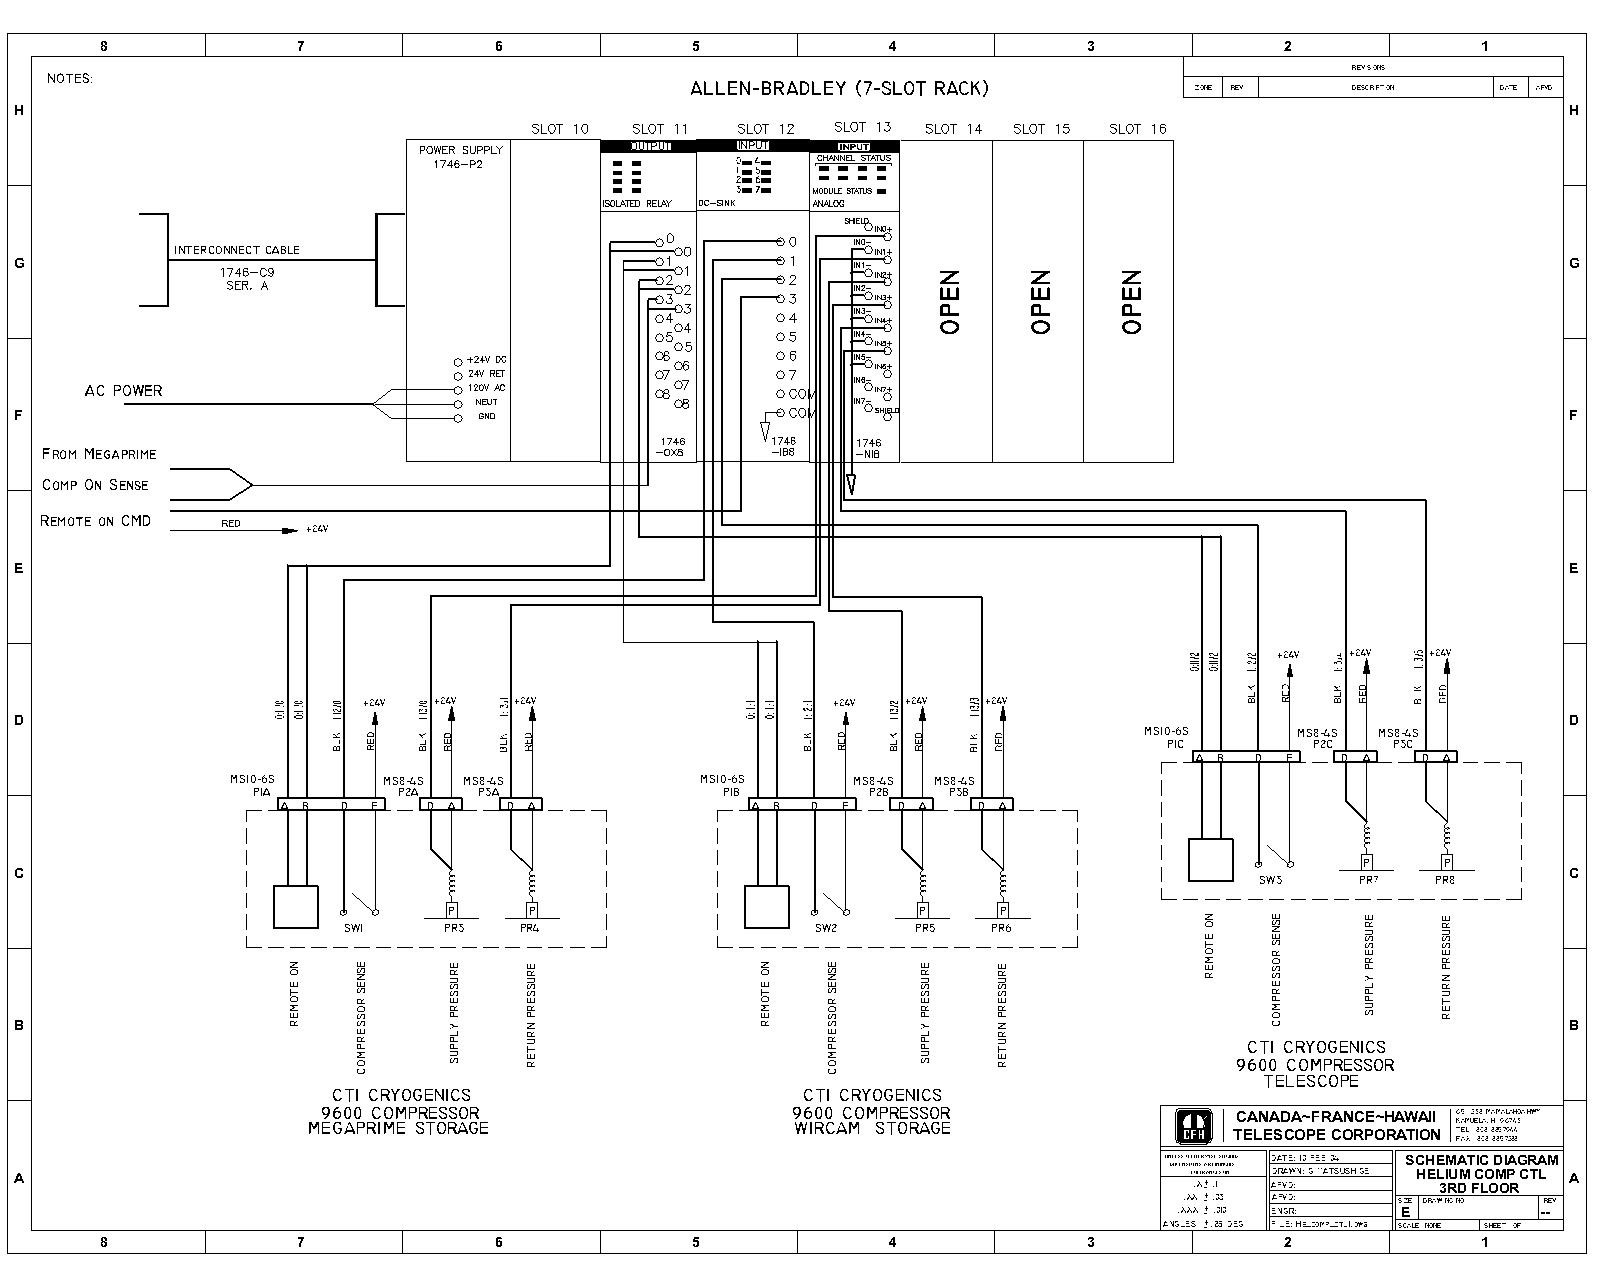 plc control panel wiring diagram pdf - wiring diagram plc pdf valid awesome  motor control circuit